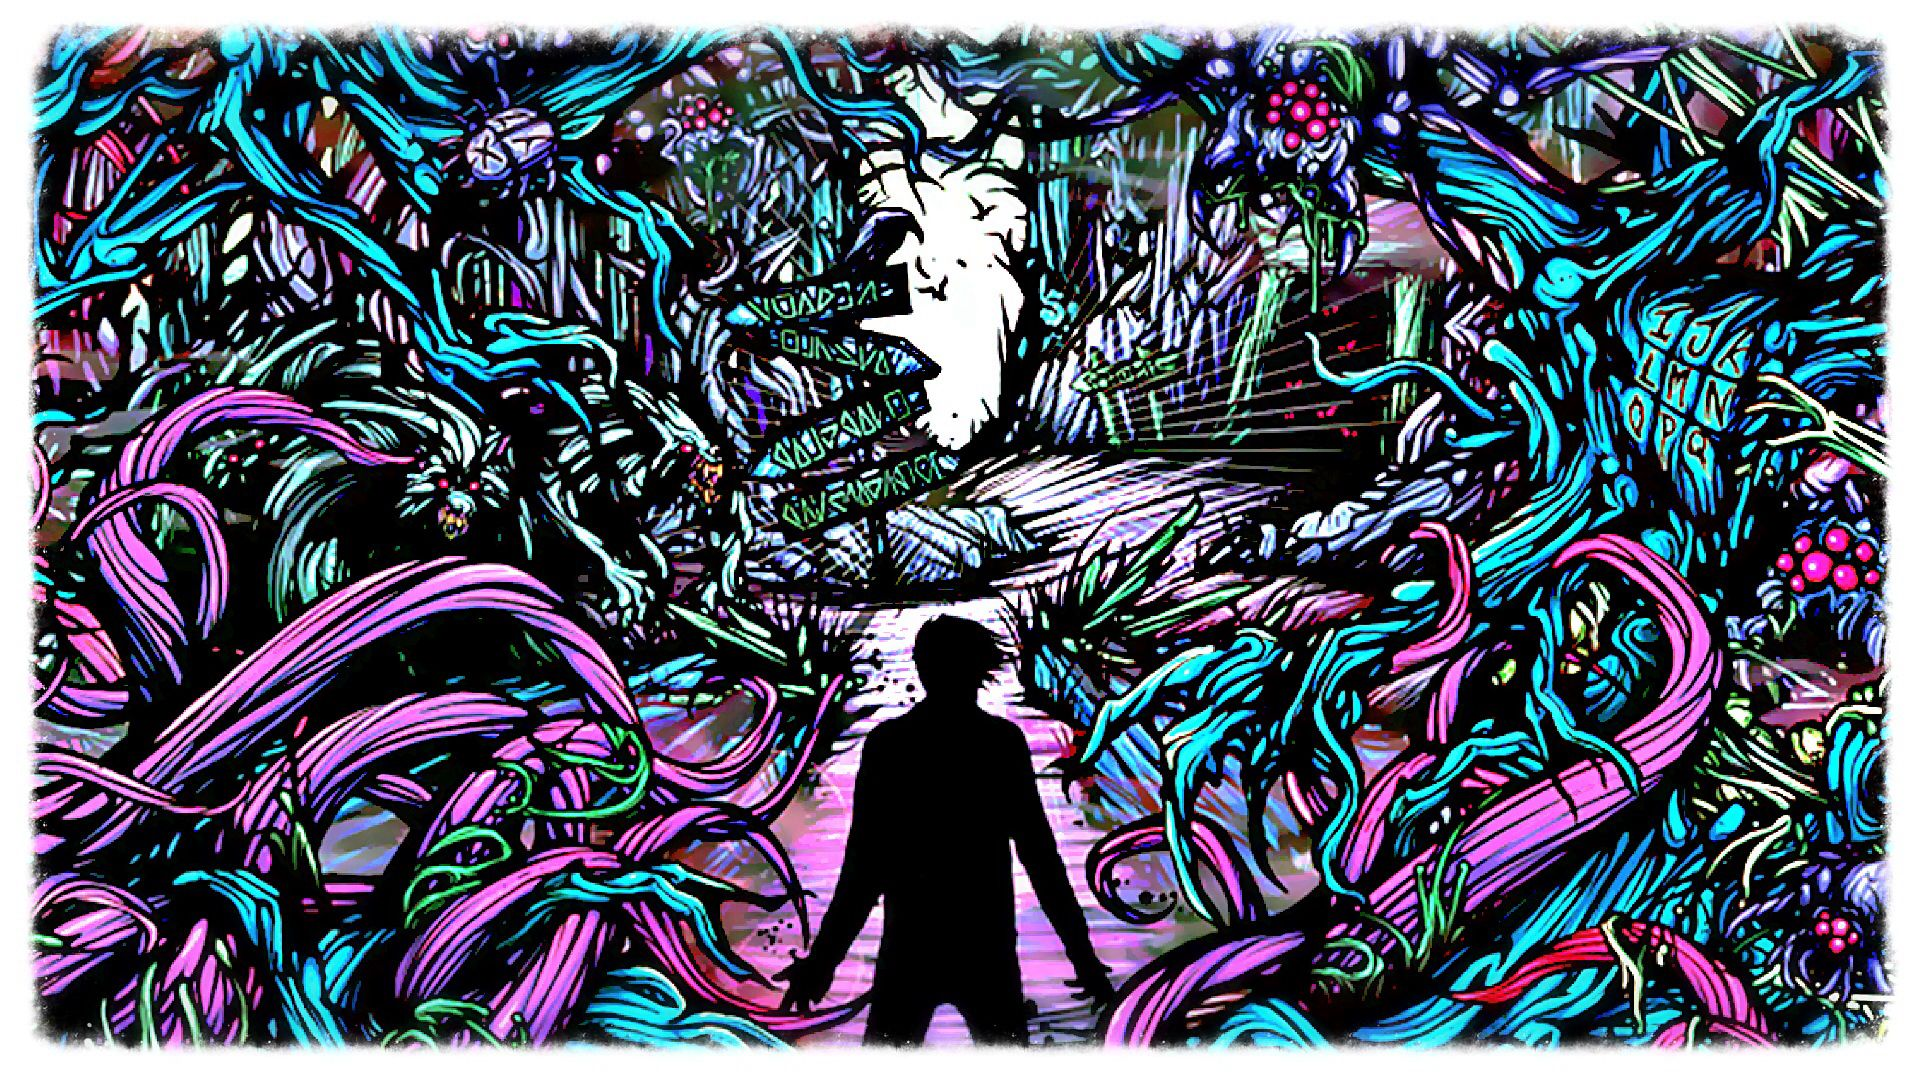 A day to remember homesick edited album art   Music/Bands ... A Day To Remember Album Cover Tattoo